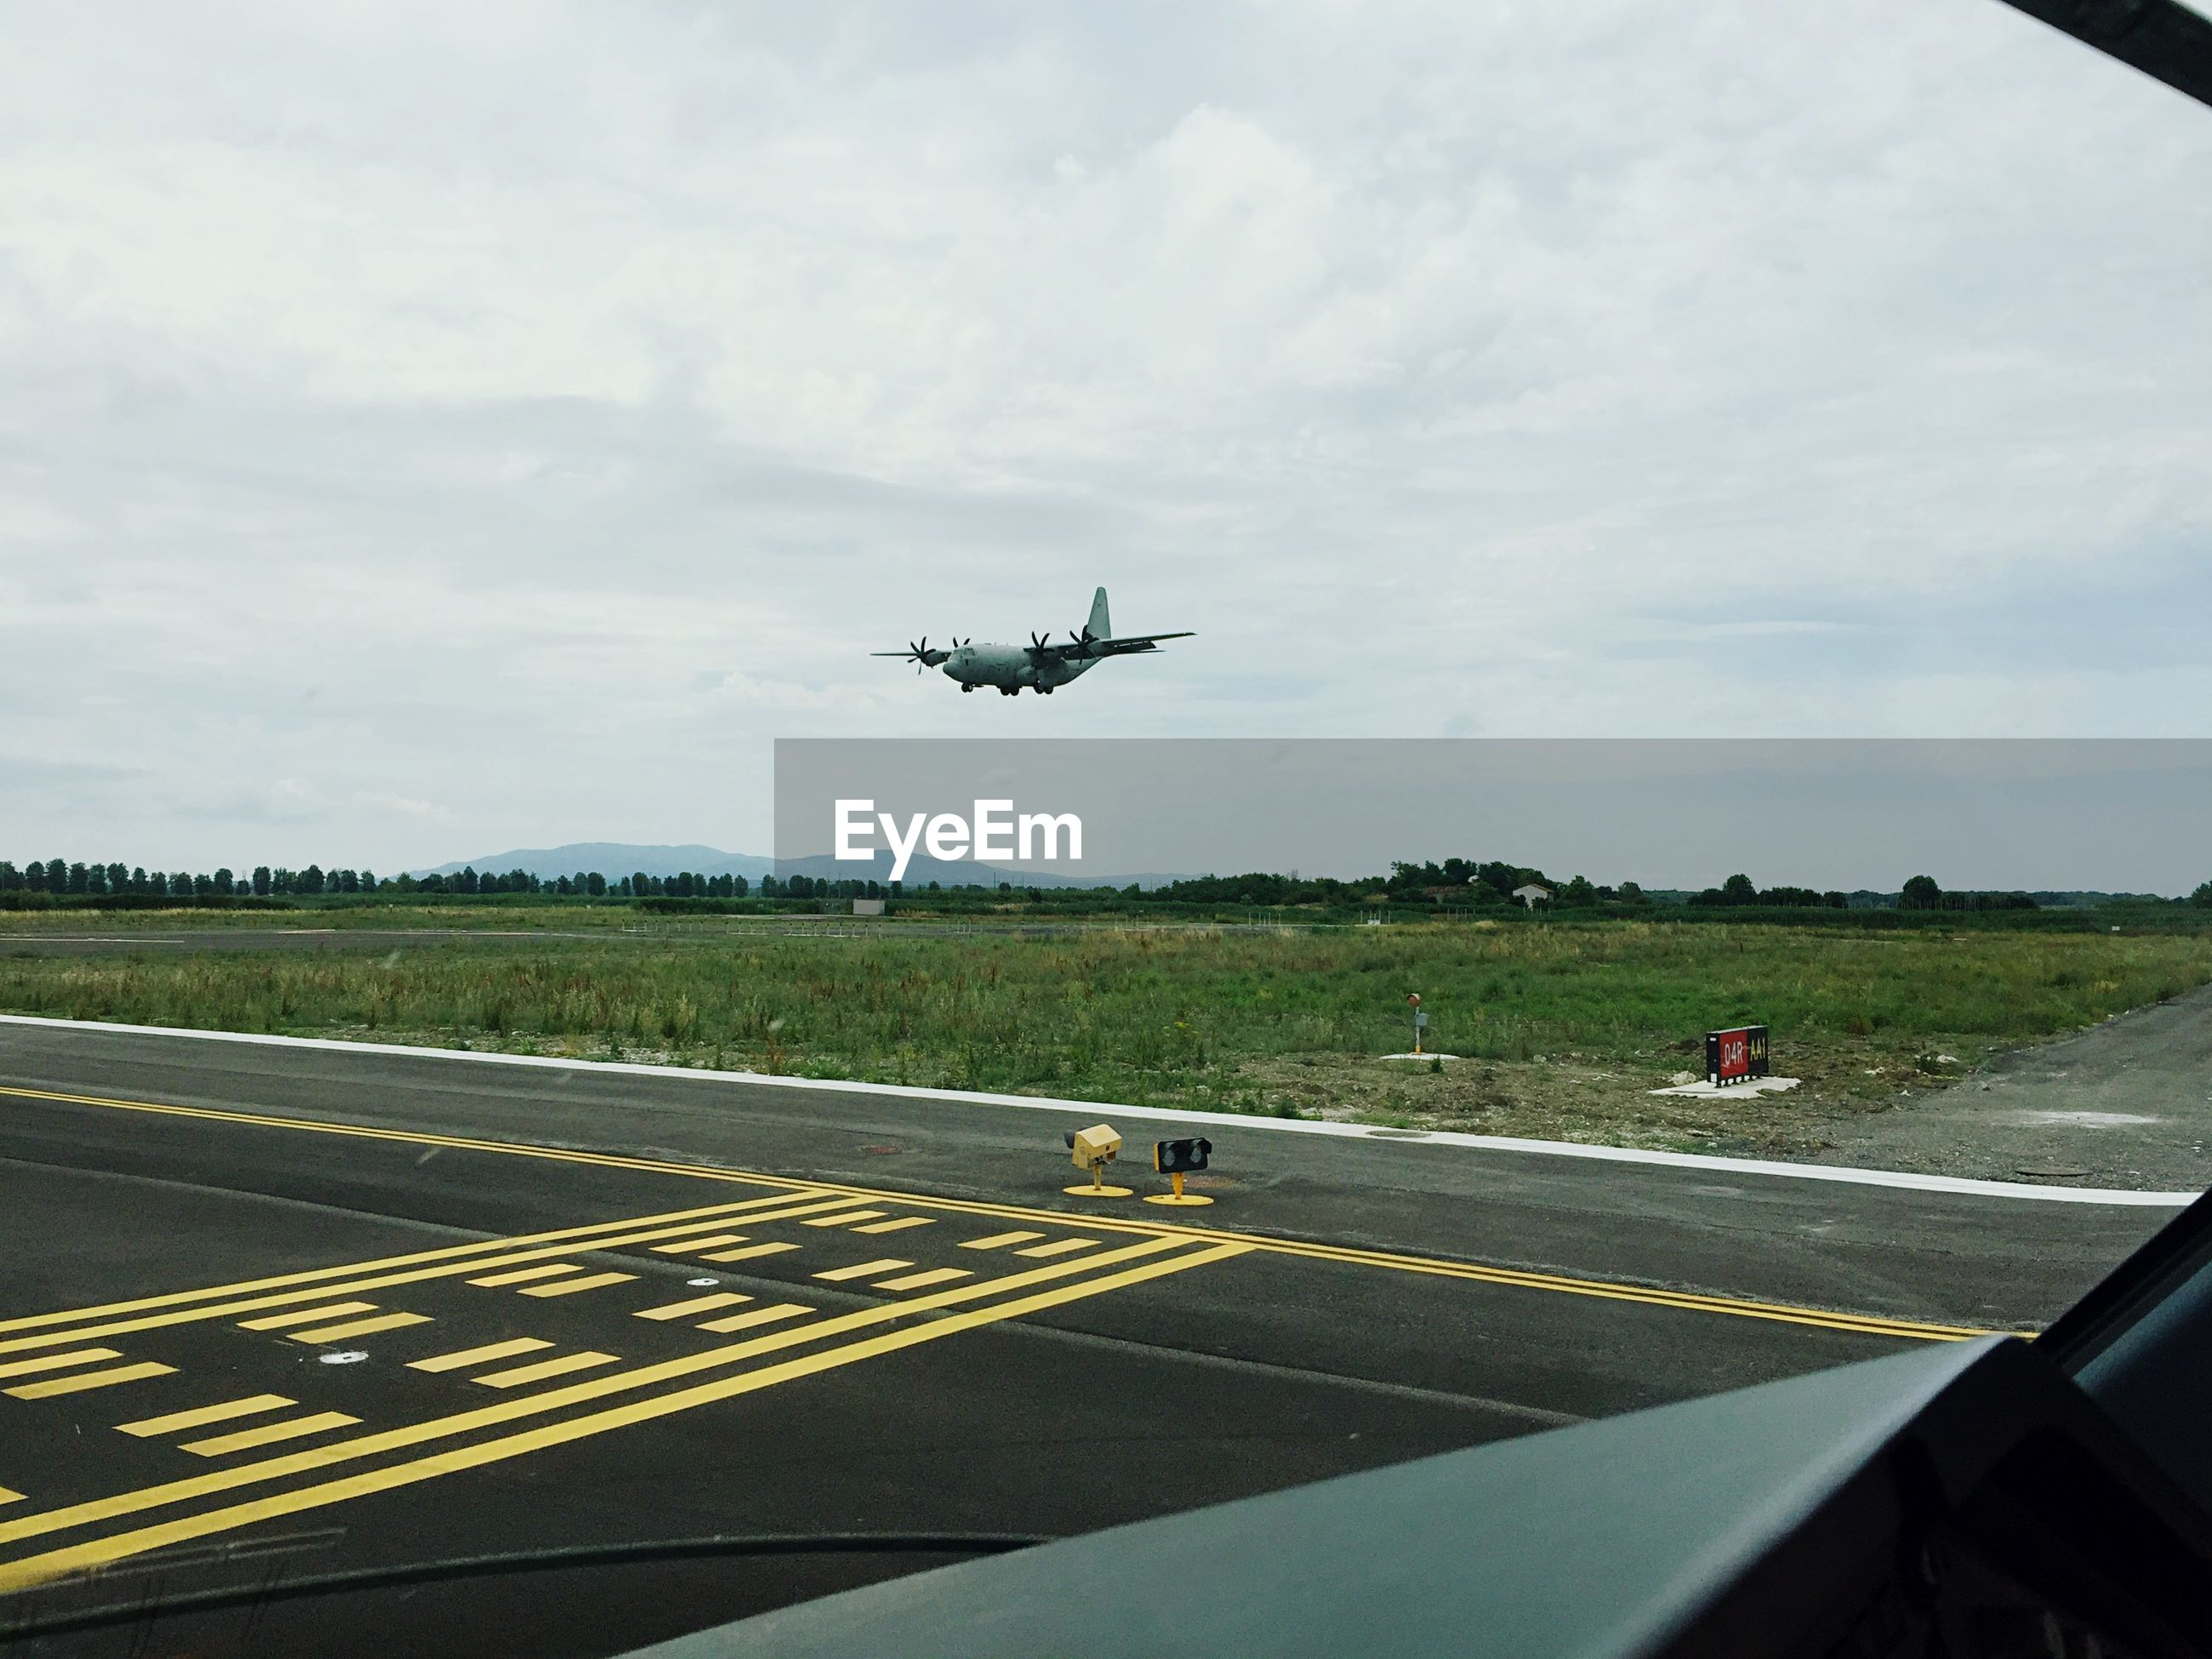 Airplane over runway seen from windshield against sky